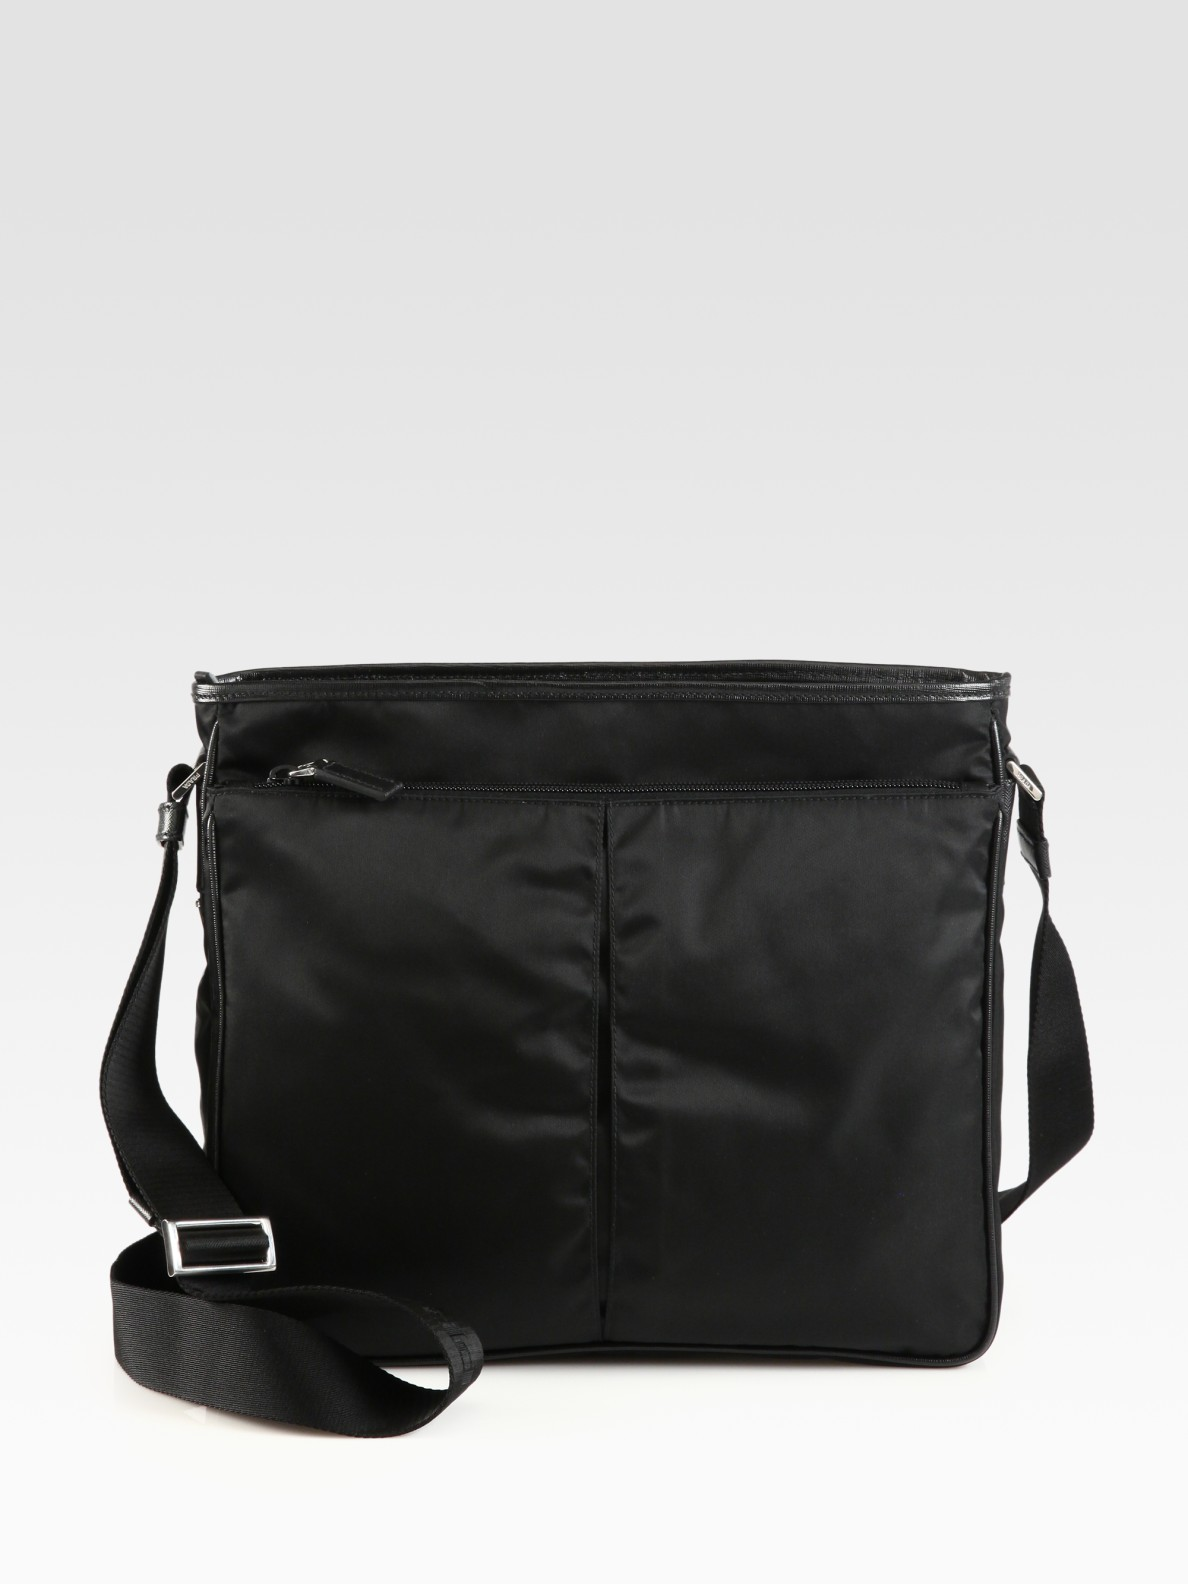 Prada Nylon Large Crossbody Bag In Black For Men Lyst